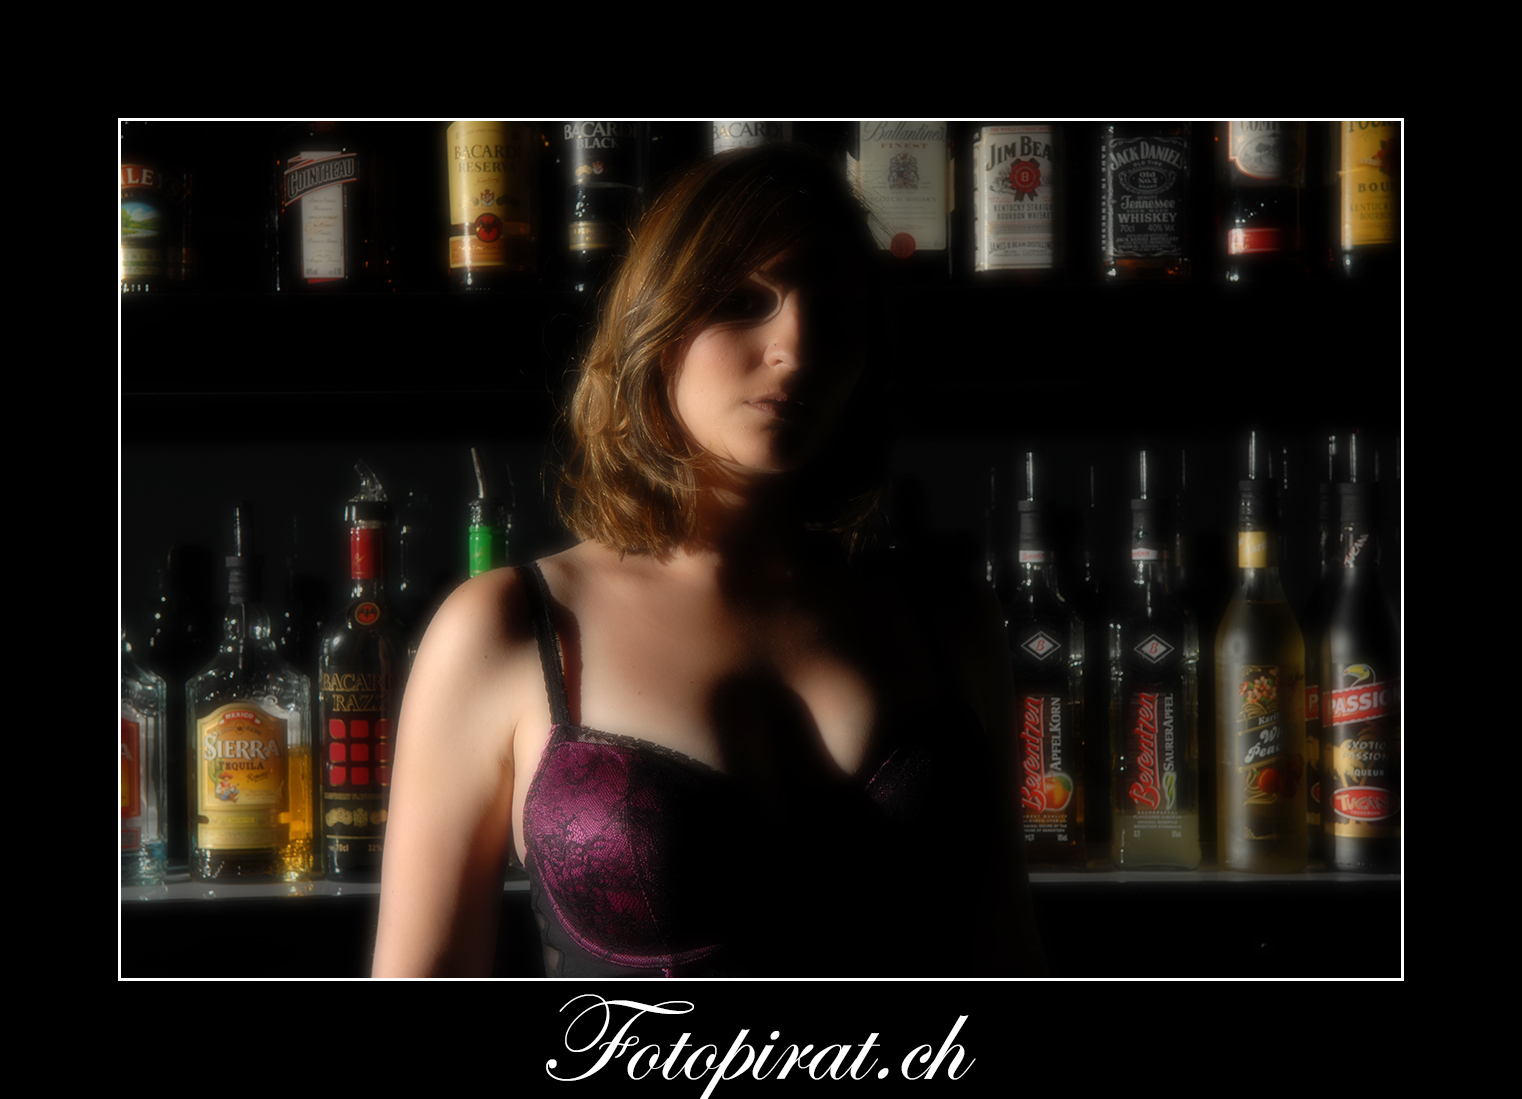 Fotoshooting, On Location, Korsage, Modelagentur, Fotomodel, Bar, blond, Dessous